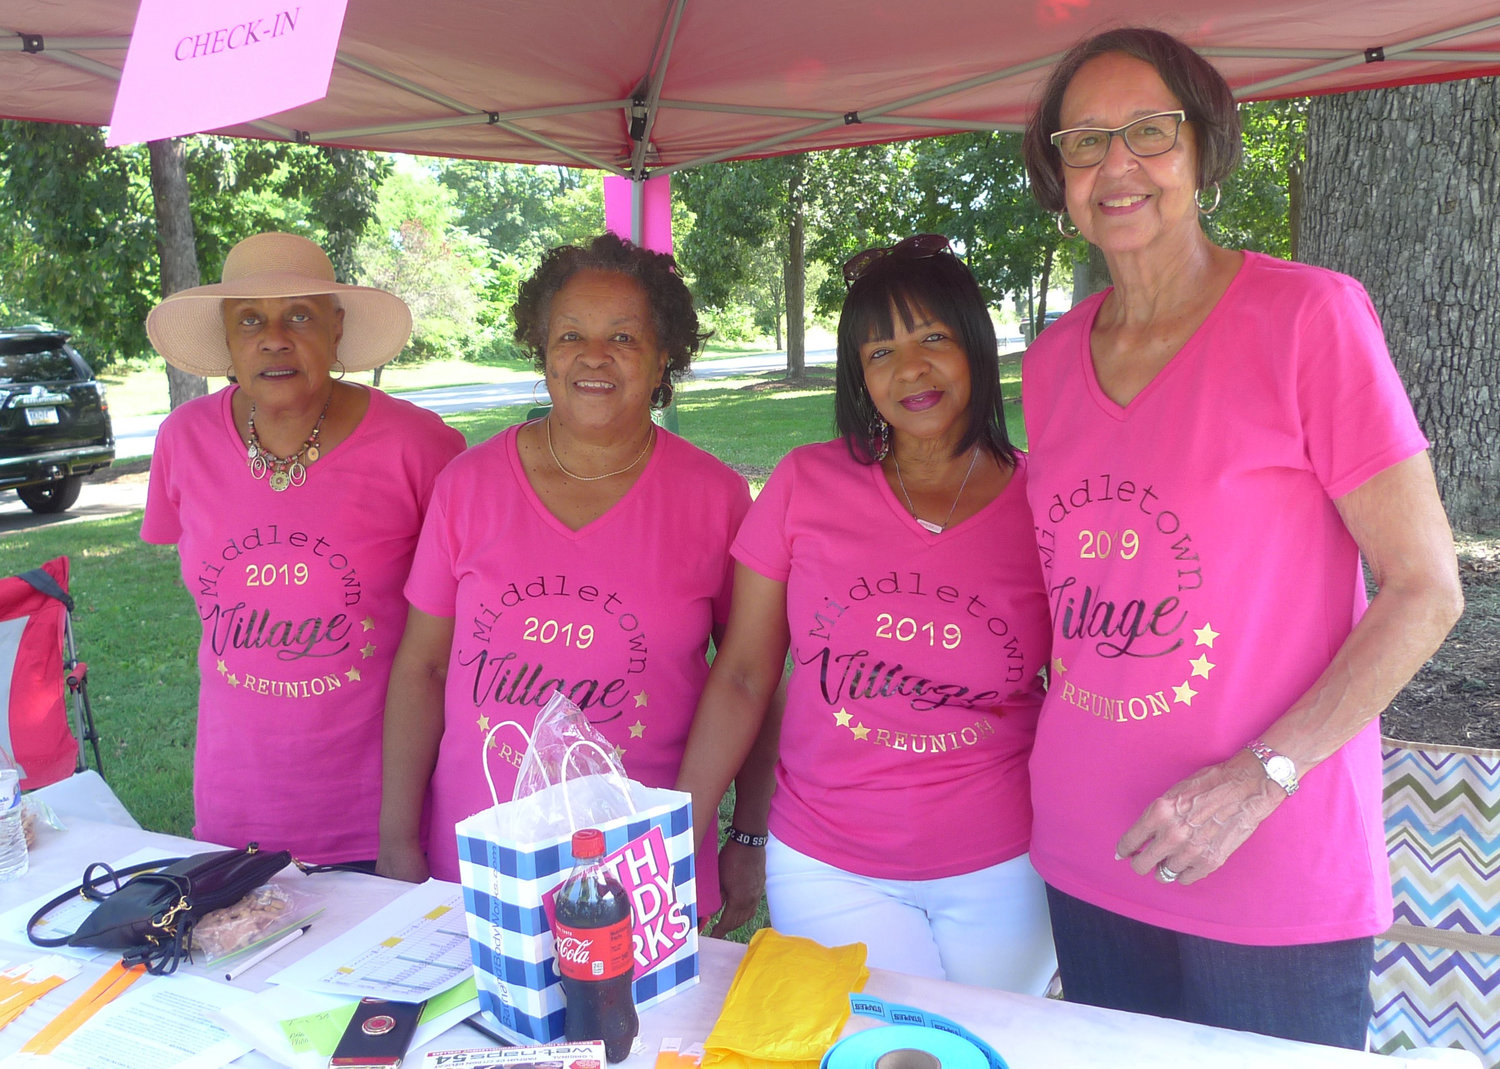 Signing people in at the second annual Middletown Village Reunion on Saturday at Hoffer Park are Brenda Thomas (Folks), Harriet Baylor (Crisp), Wanda Jefferies and Emma Pettis (Holton).